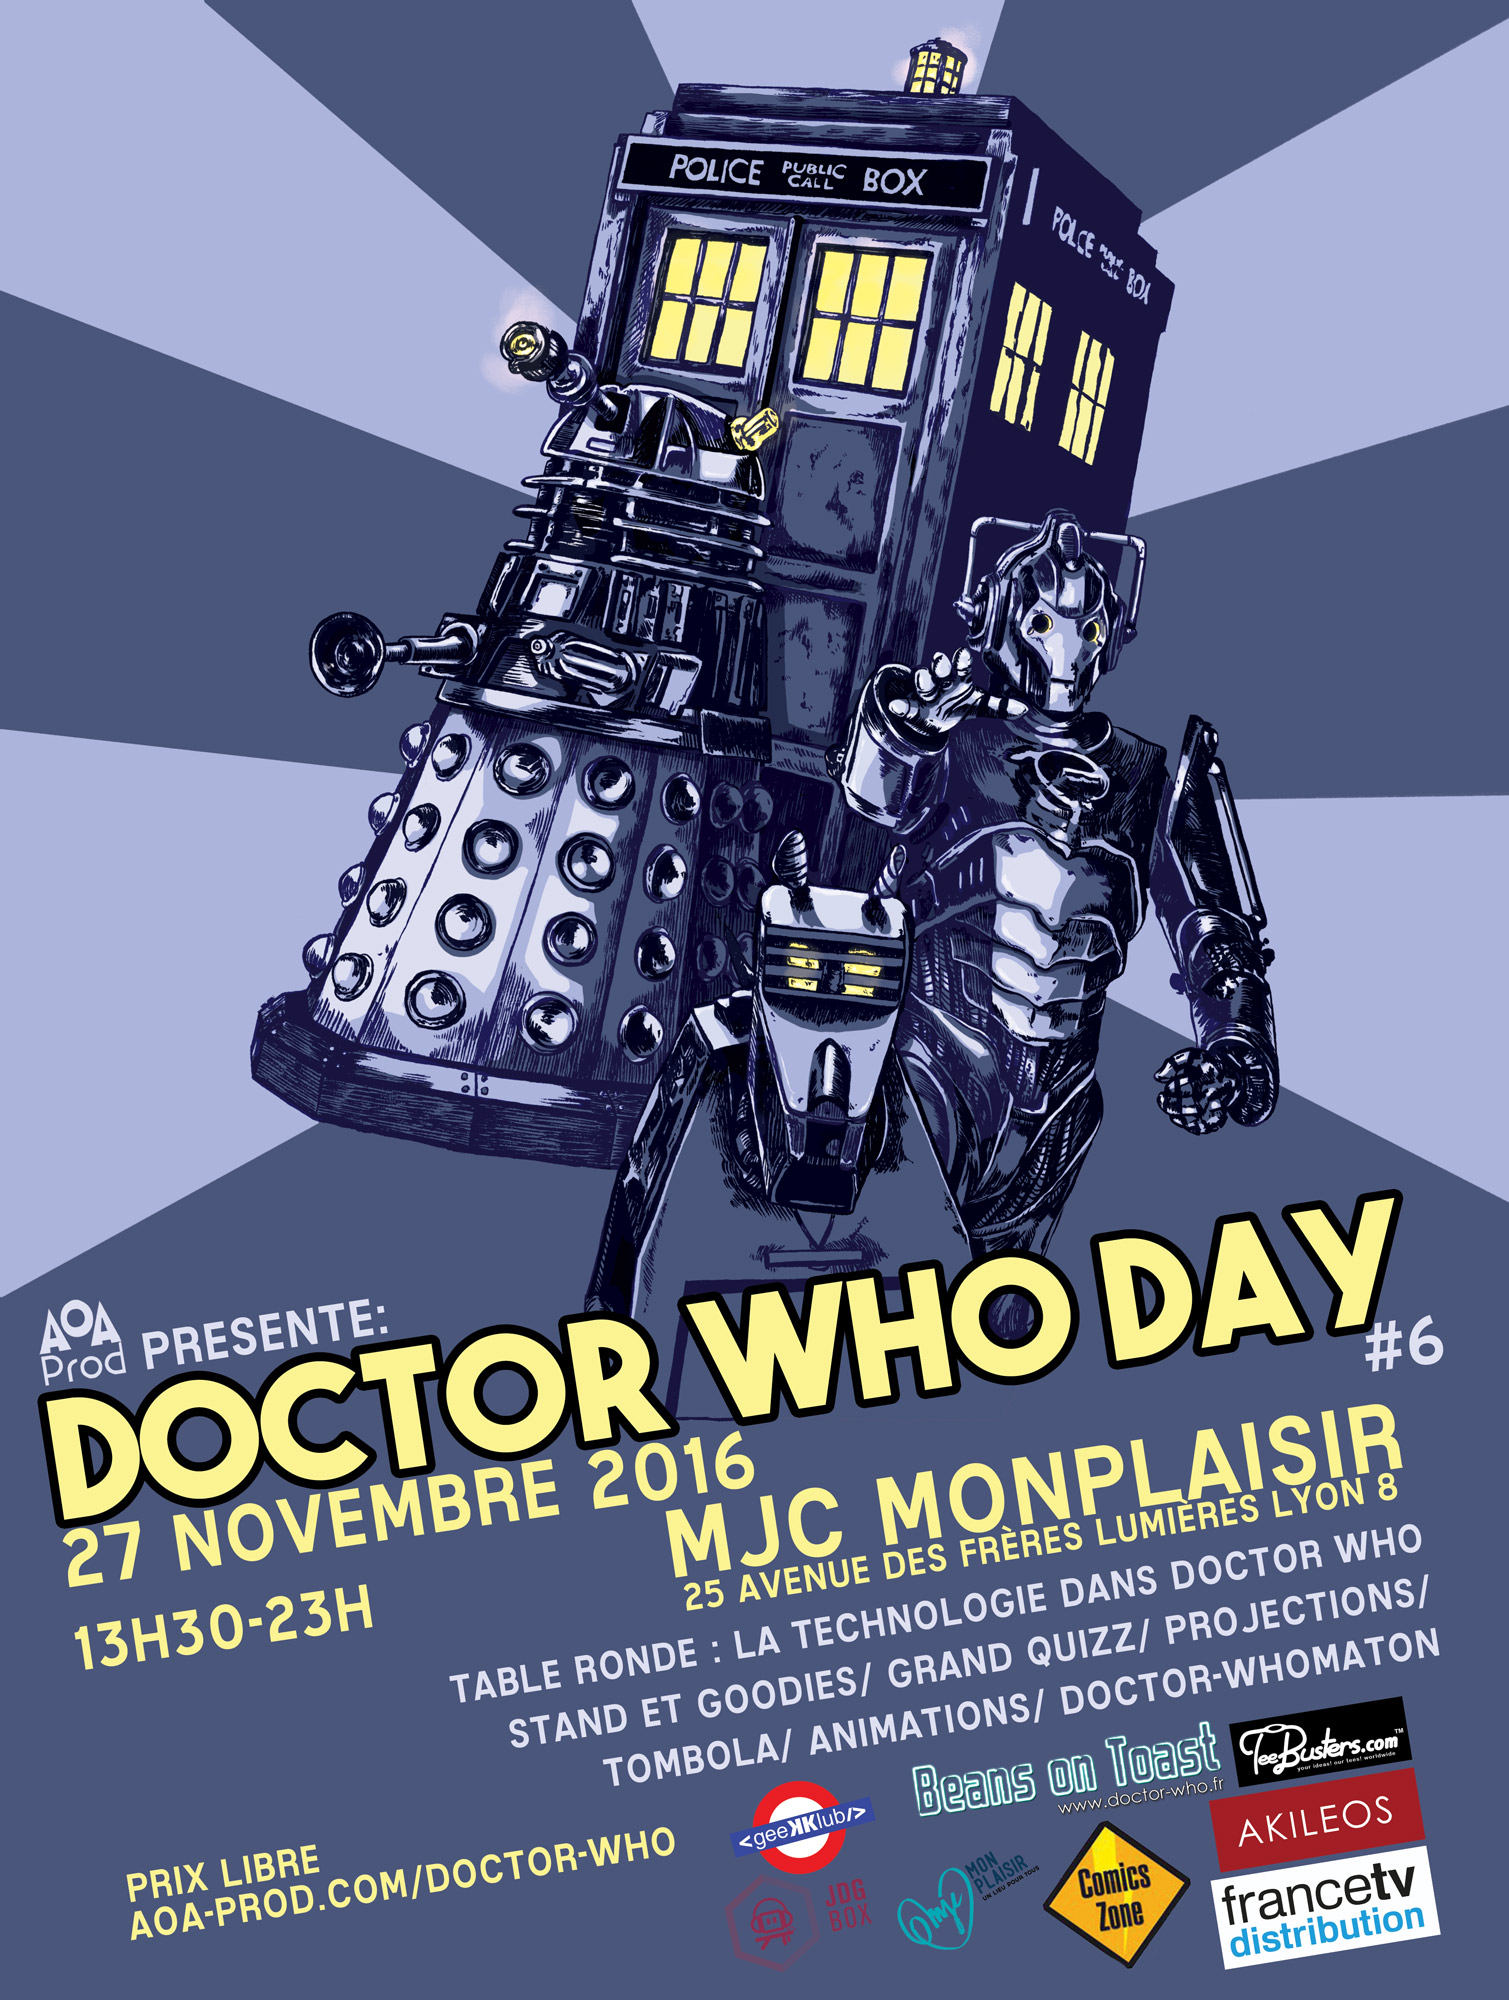 Doctor Who Day #6